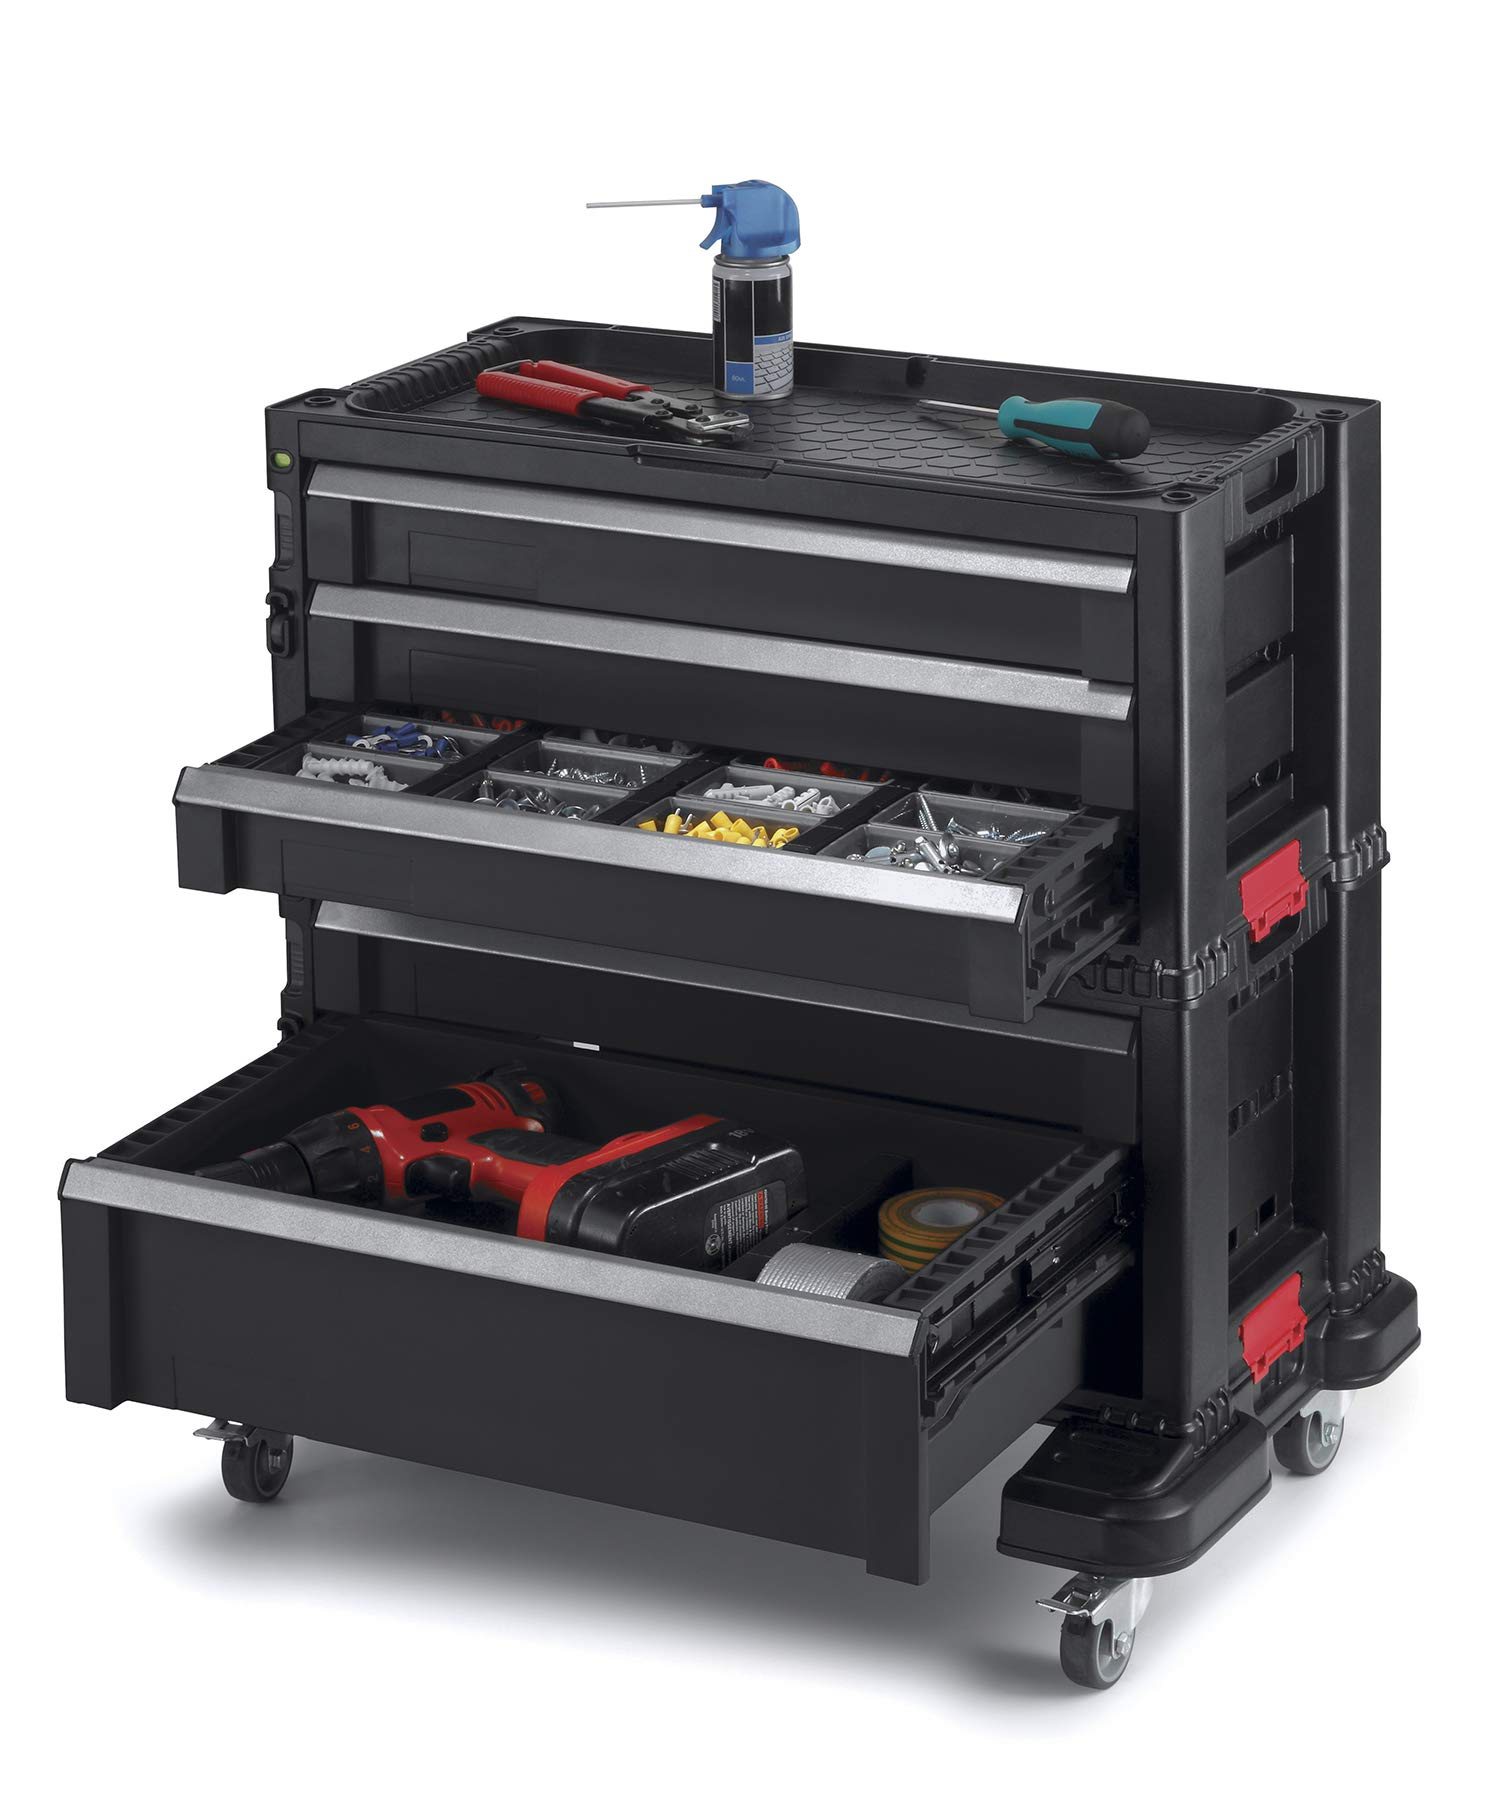 Keter 240762 5 Drawer Modular Garage & Tool Organizer, Black by Keter